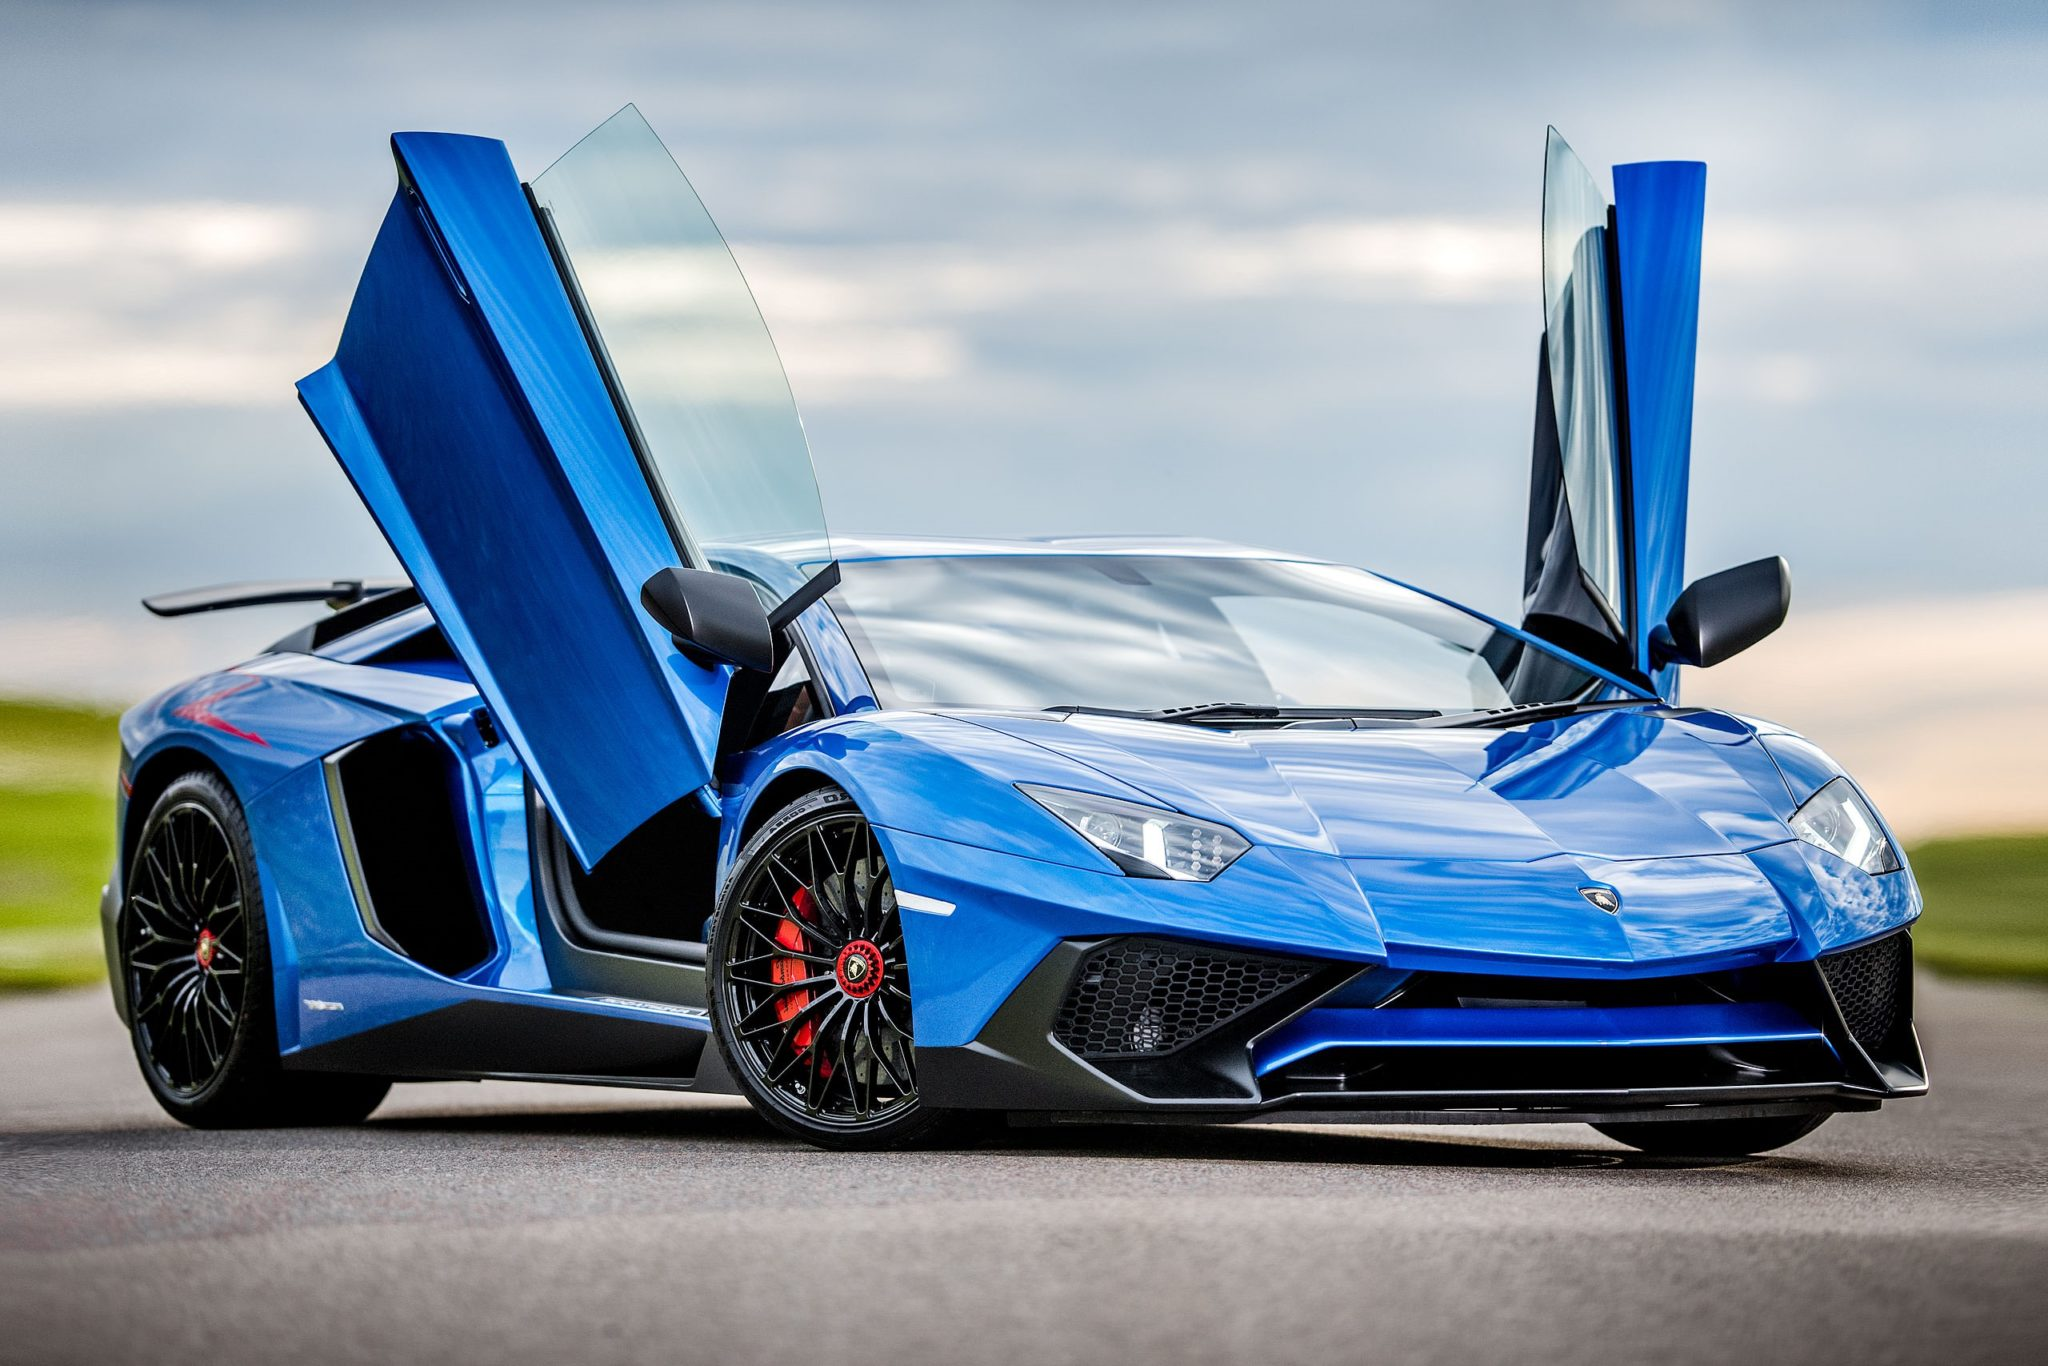 How Much Is It To Rent A Lamborghini >> 5 Things To Know Before Renting A Lamborghini In Dubai Uae